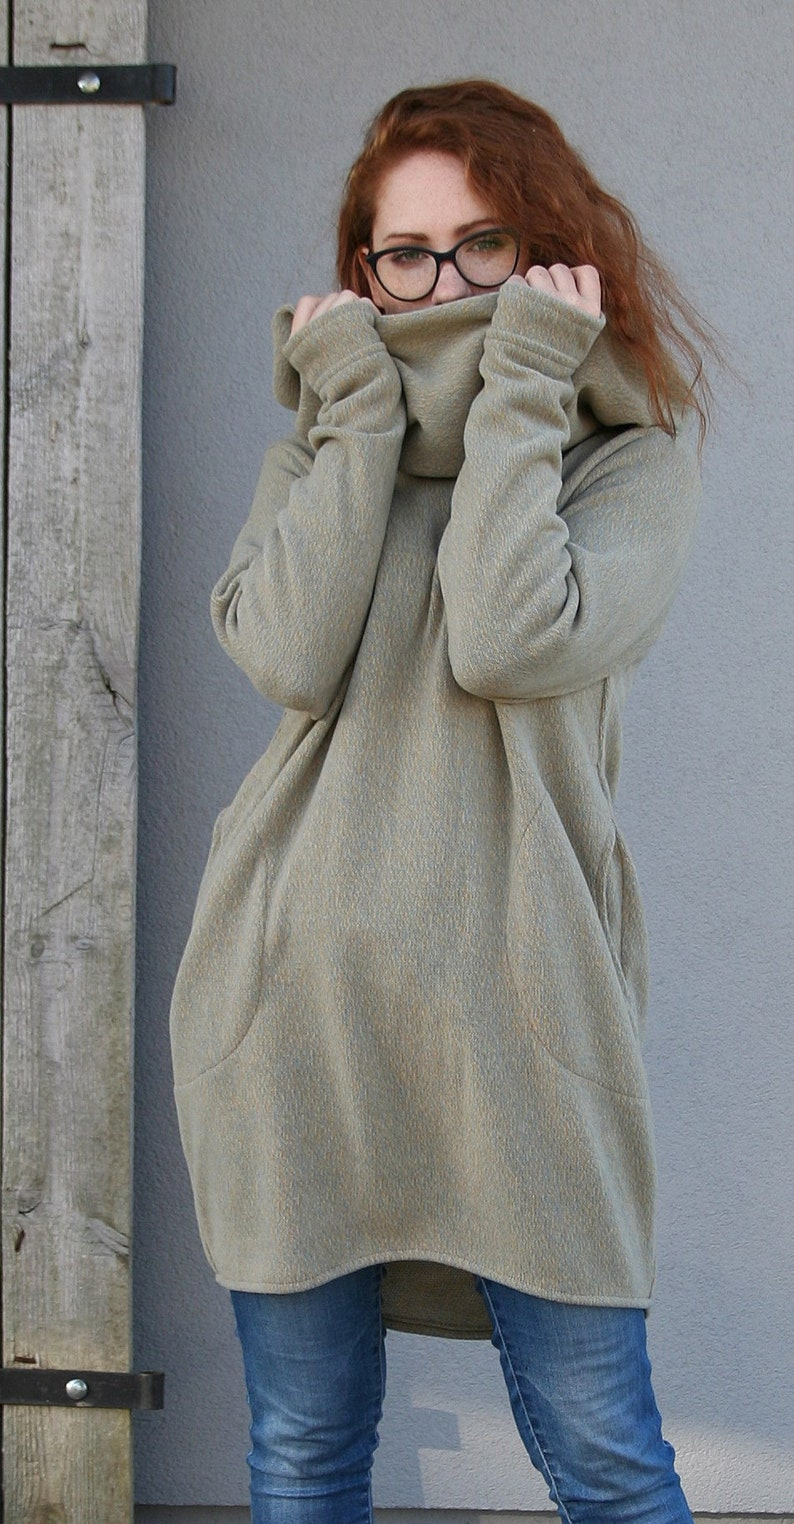 warm poncho Spring Sweatshirt Size S  Loose jumper sweater turtleneck unique clothing cotton loose sweater Handmade pullover